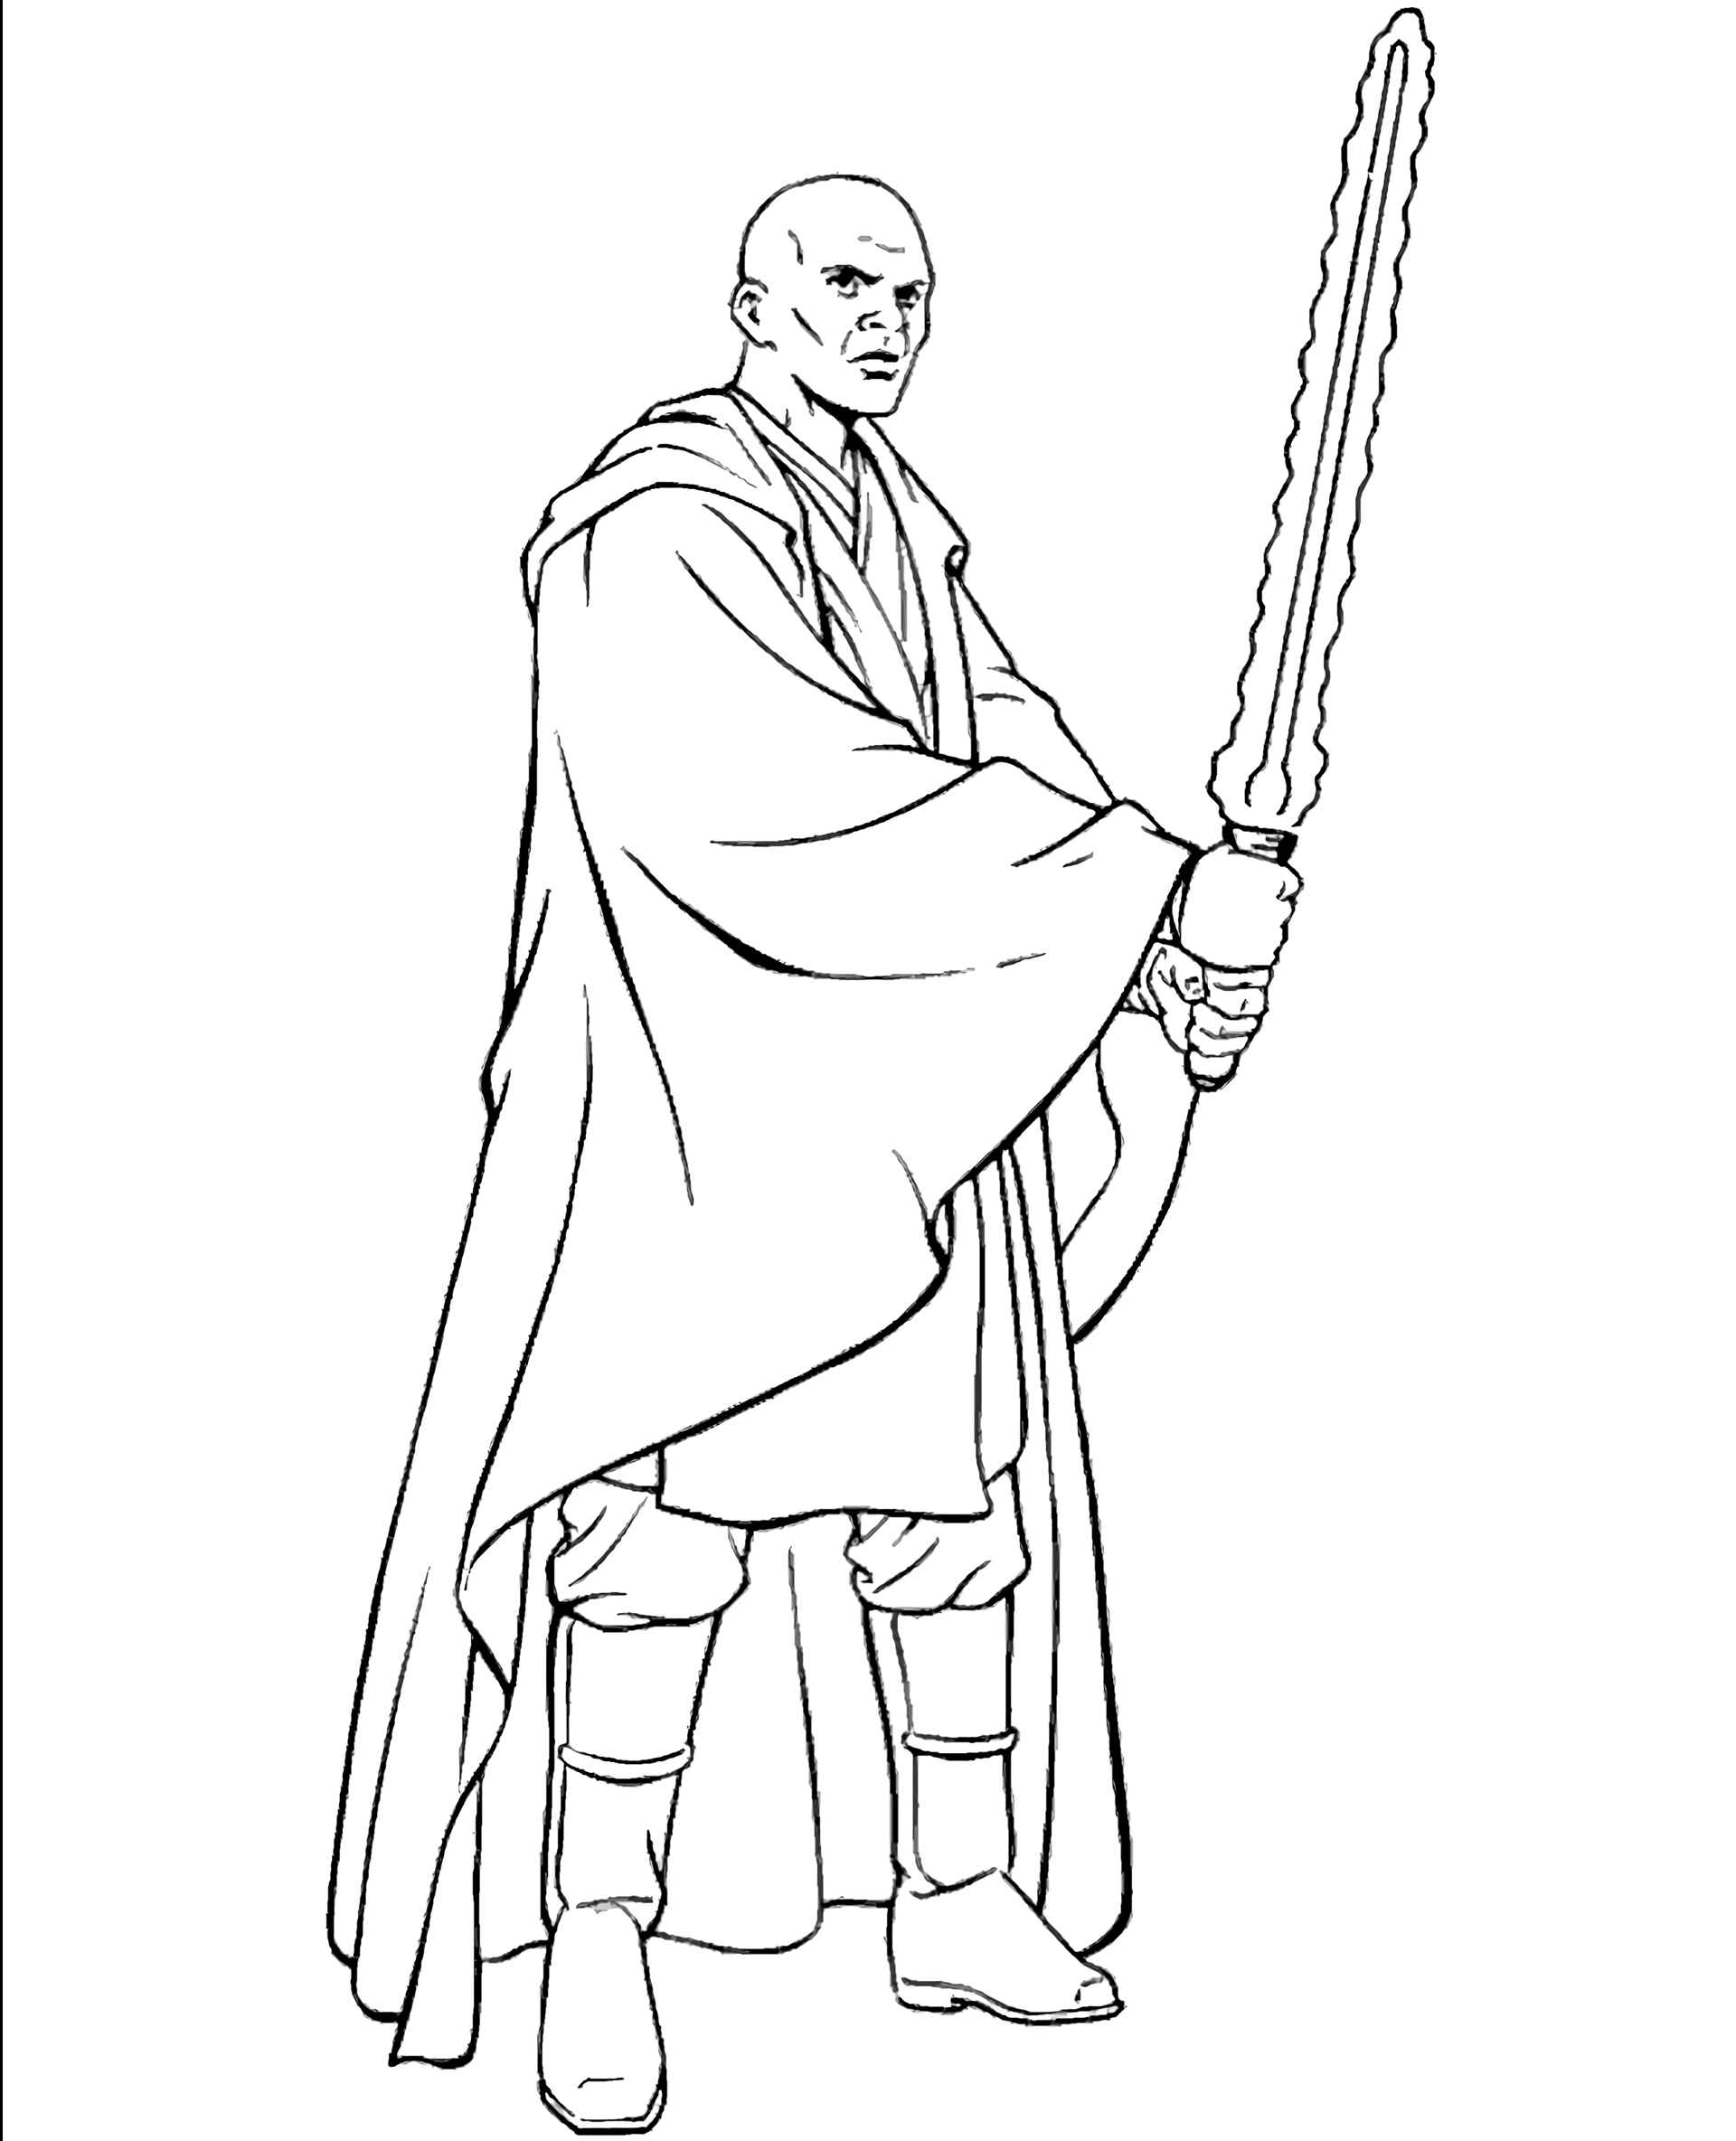 Mace Windu From Star Wars With Laser Weapons Coloring Page